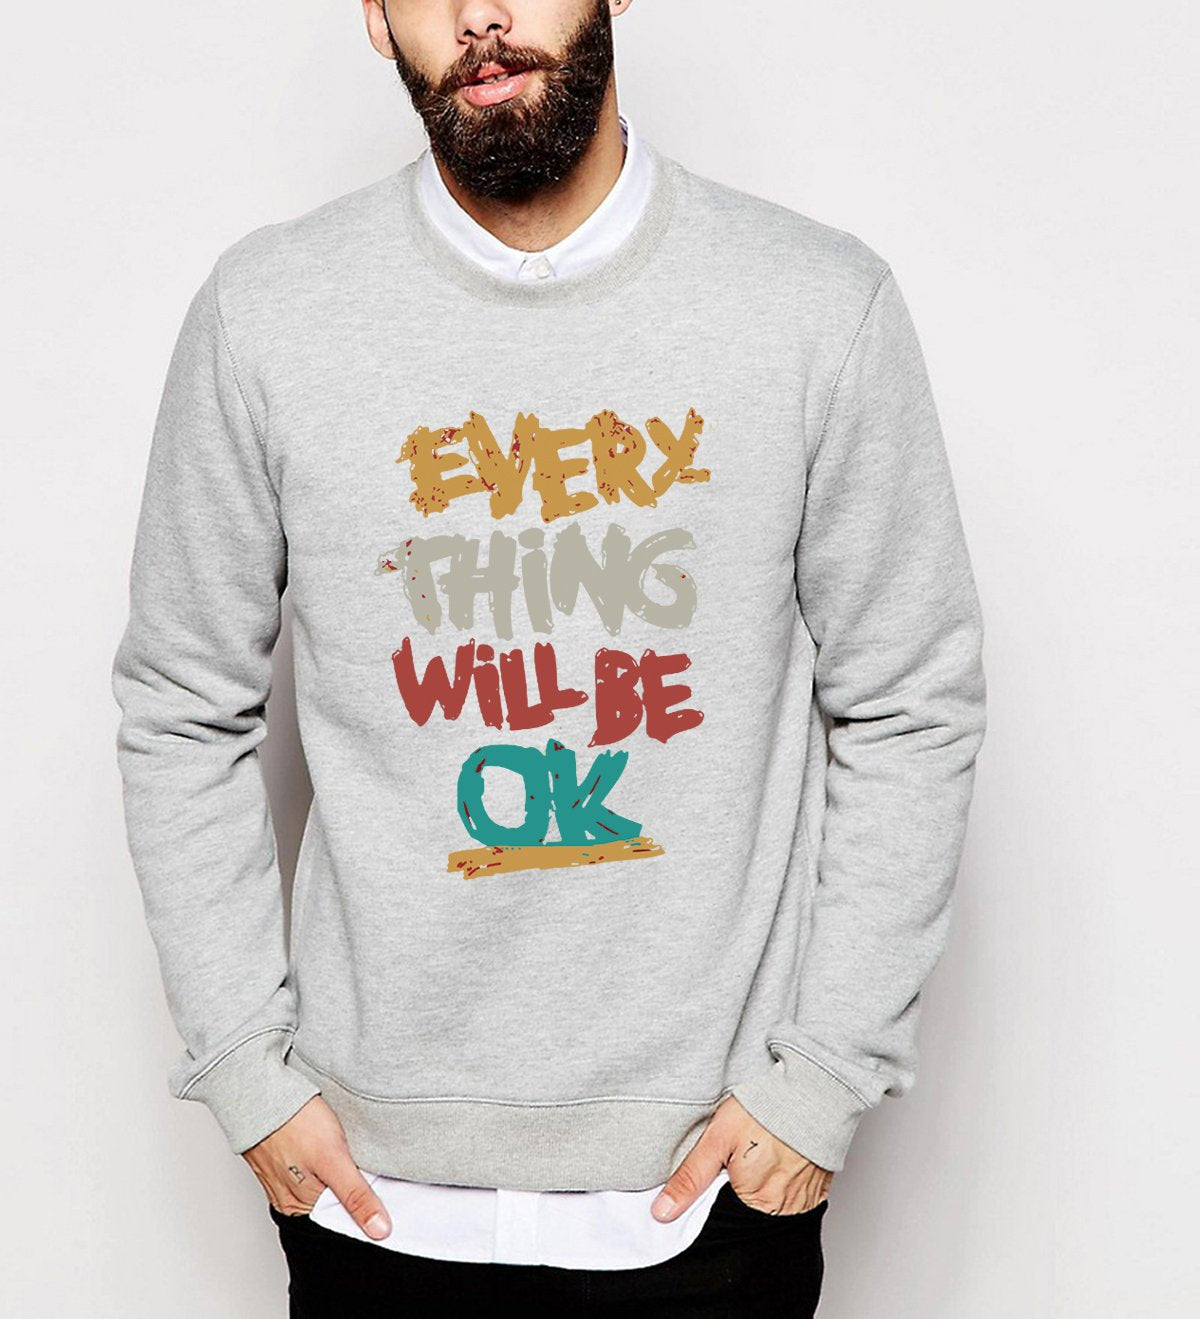 hot sale 2017 men autumn winter hipster hoodies Everything Will Be Okeosegal-eosegal